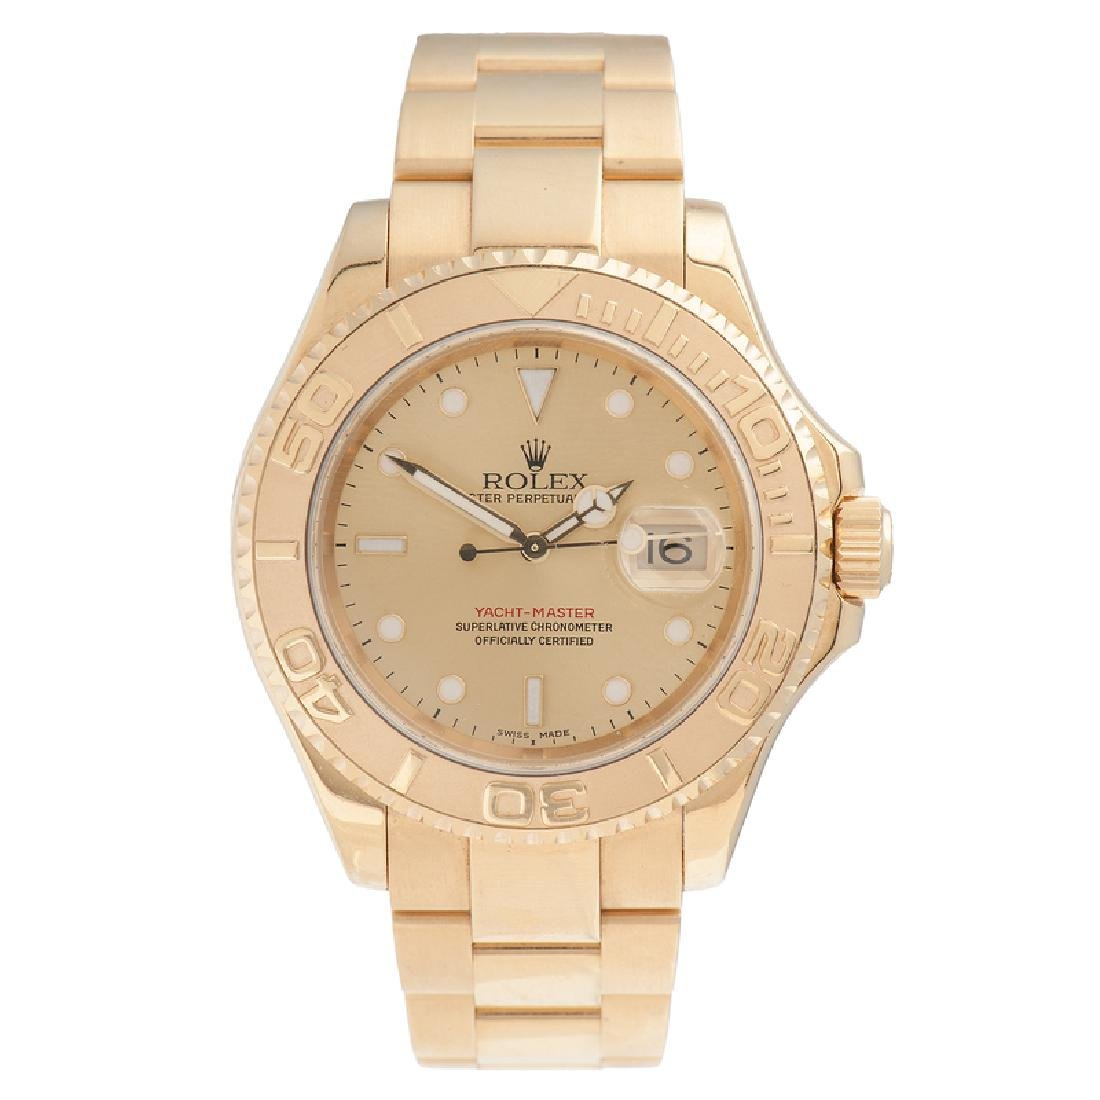 Rolex Oyster Perpetual Date Yacht Master 40 in 18 Karat